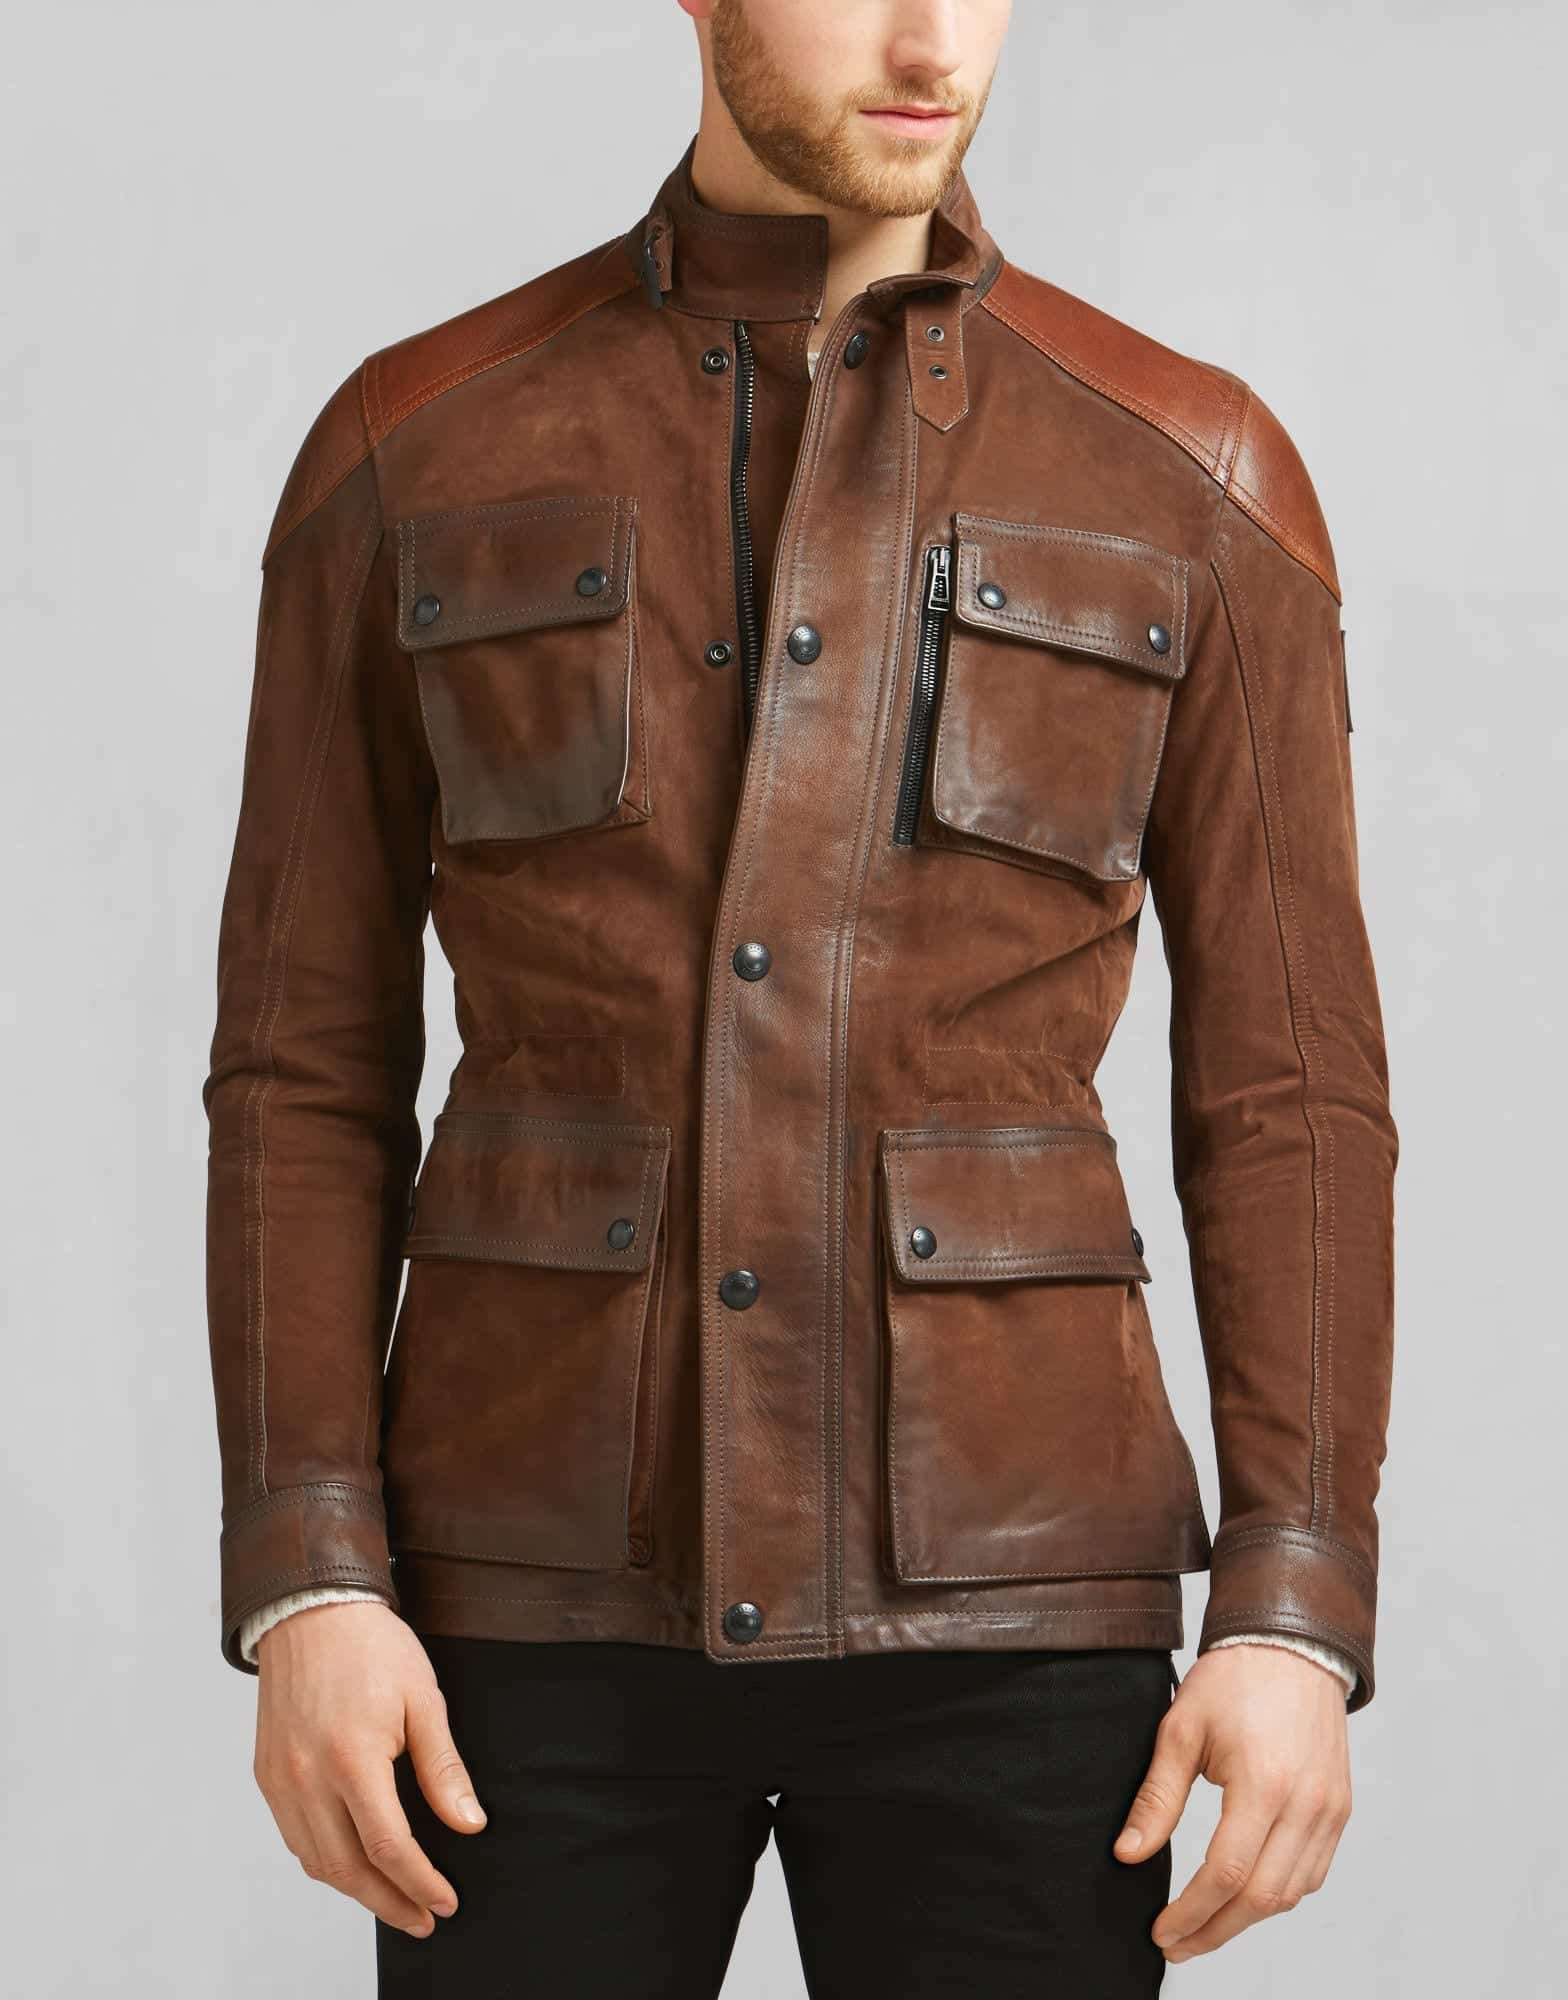 Top Brands for Leather Jackets-15 Most Popular Brands 2017 for Men